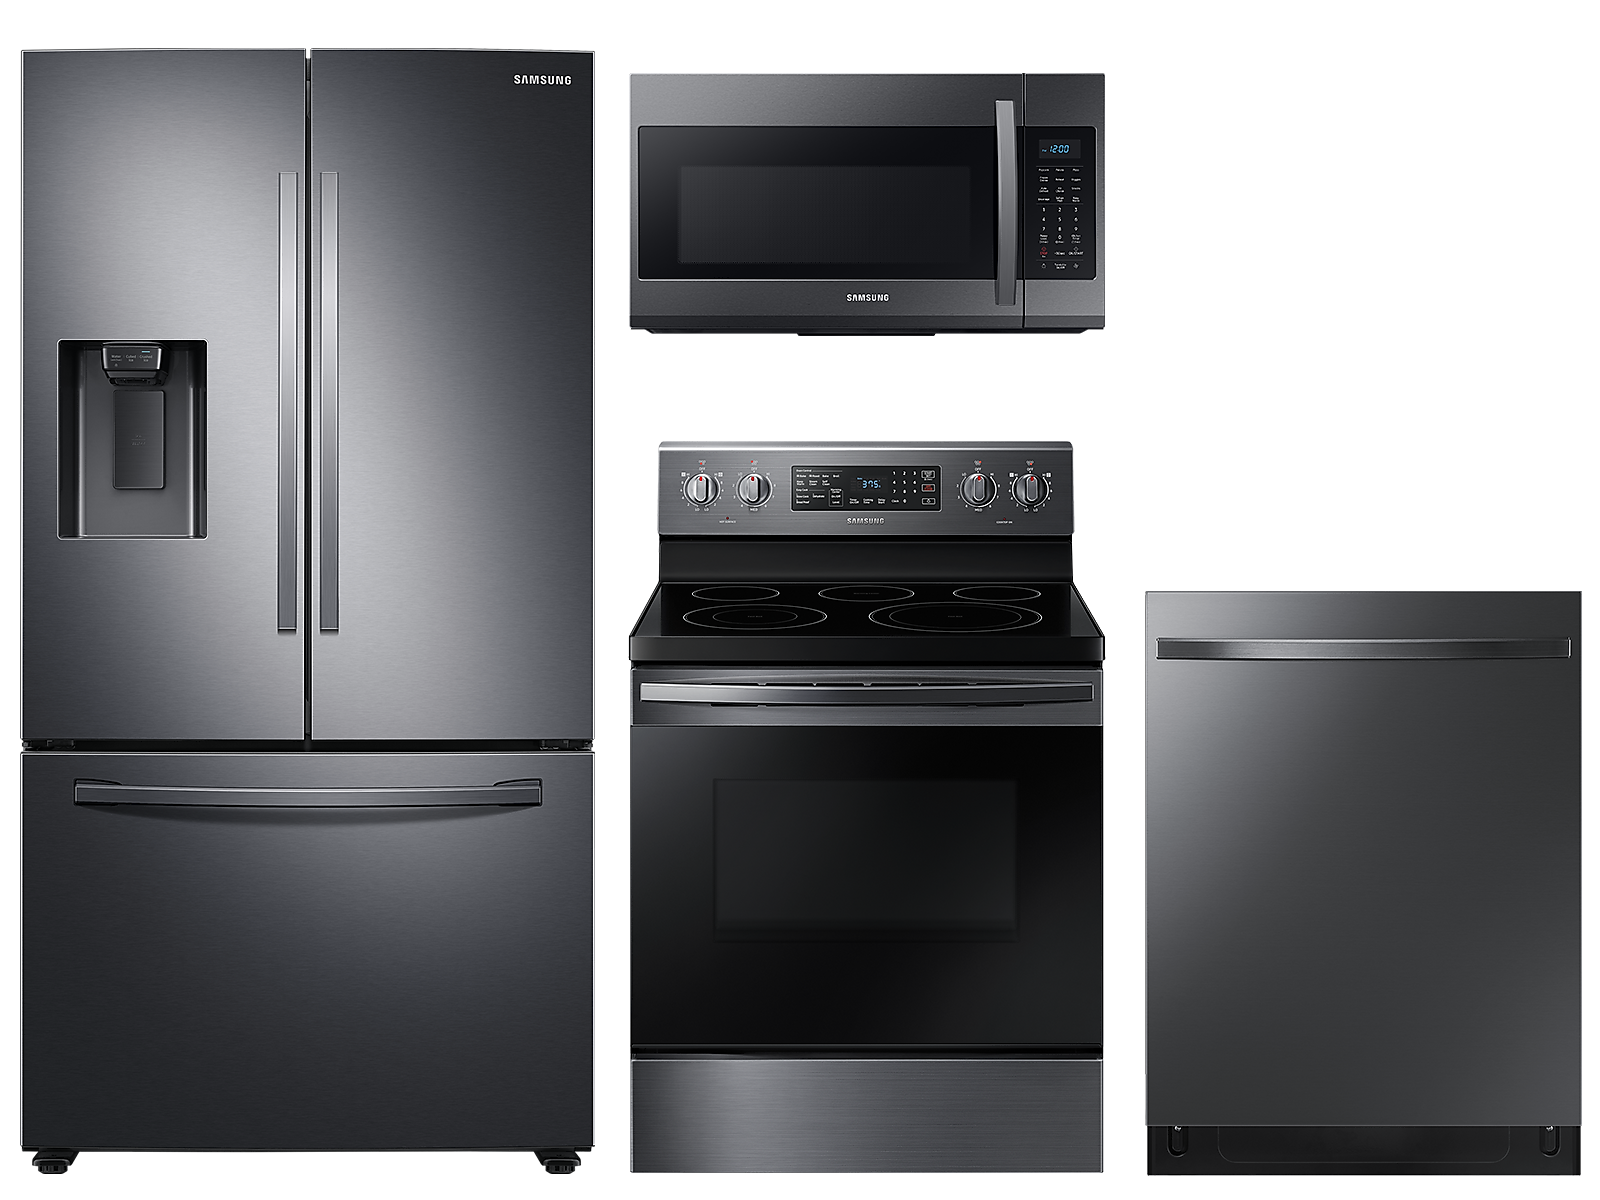 Samsung coupon: Samsung Large capacity 3-door refrigerator & electric range package in Black stainless(BNDL-1590165023311)